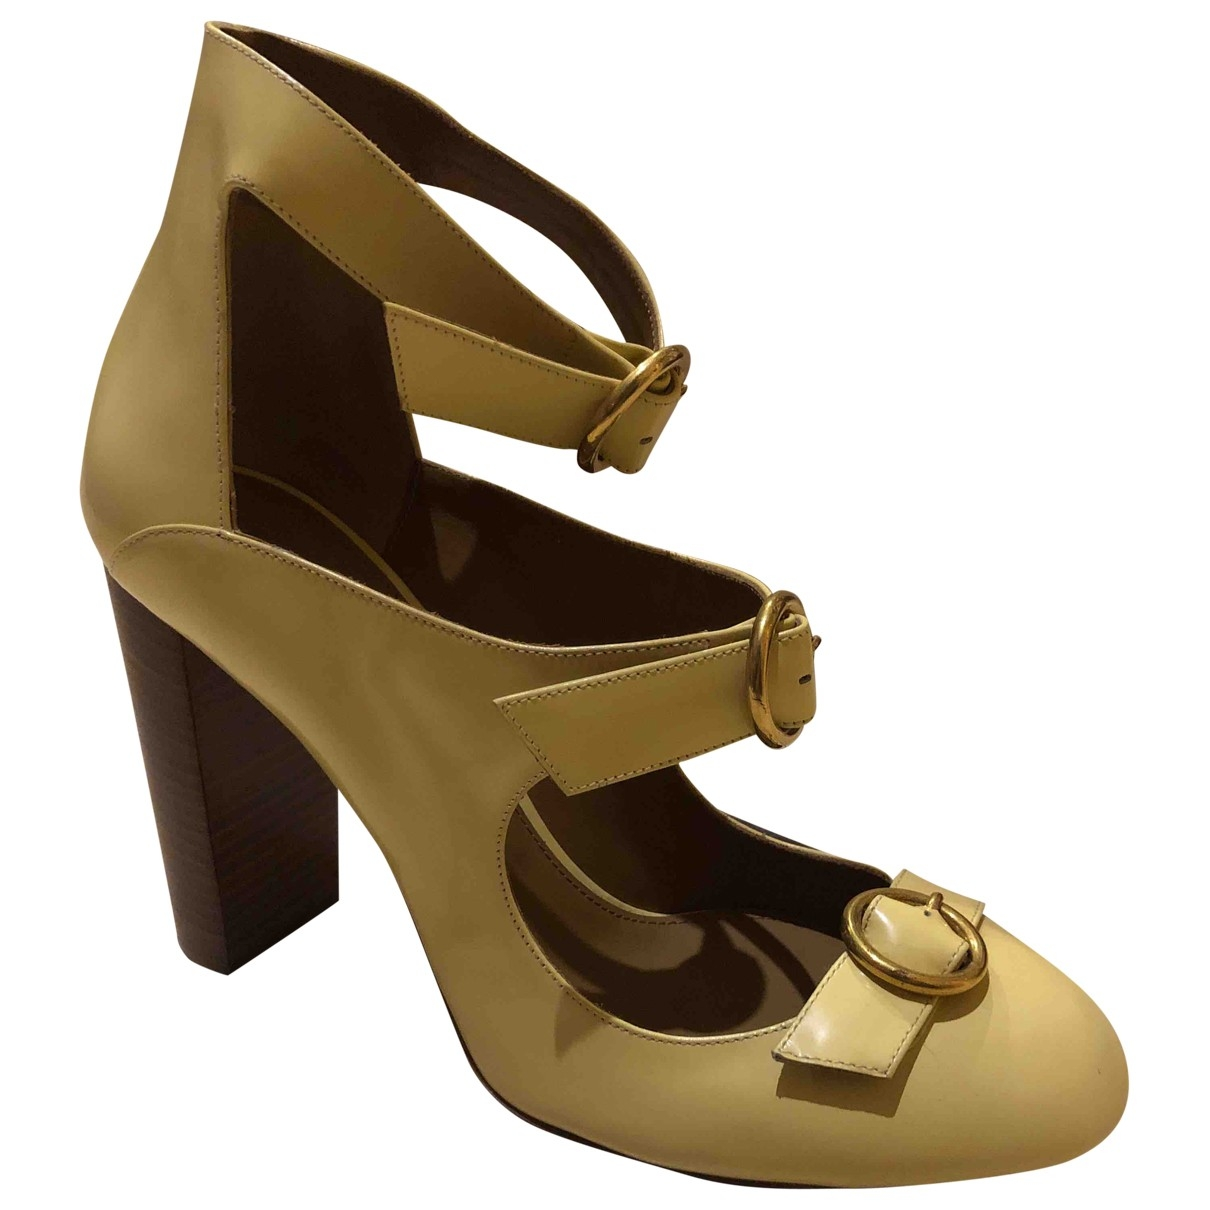 Chloé \N Yellow Patent leather Heels for Women 40 EU